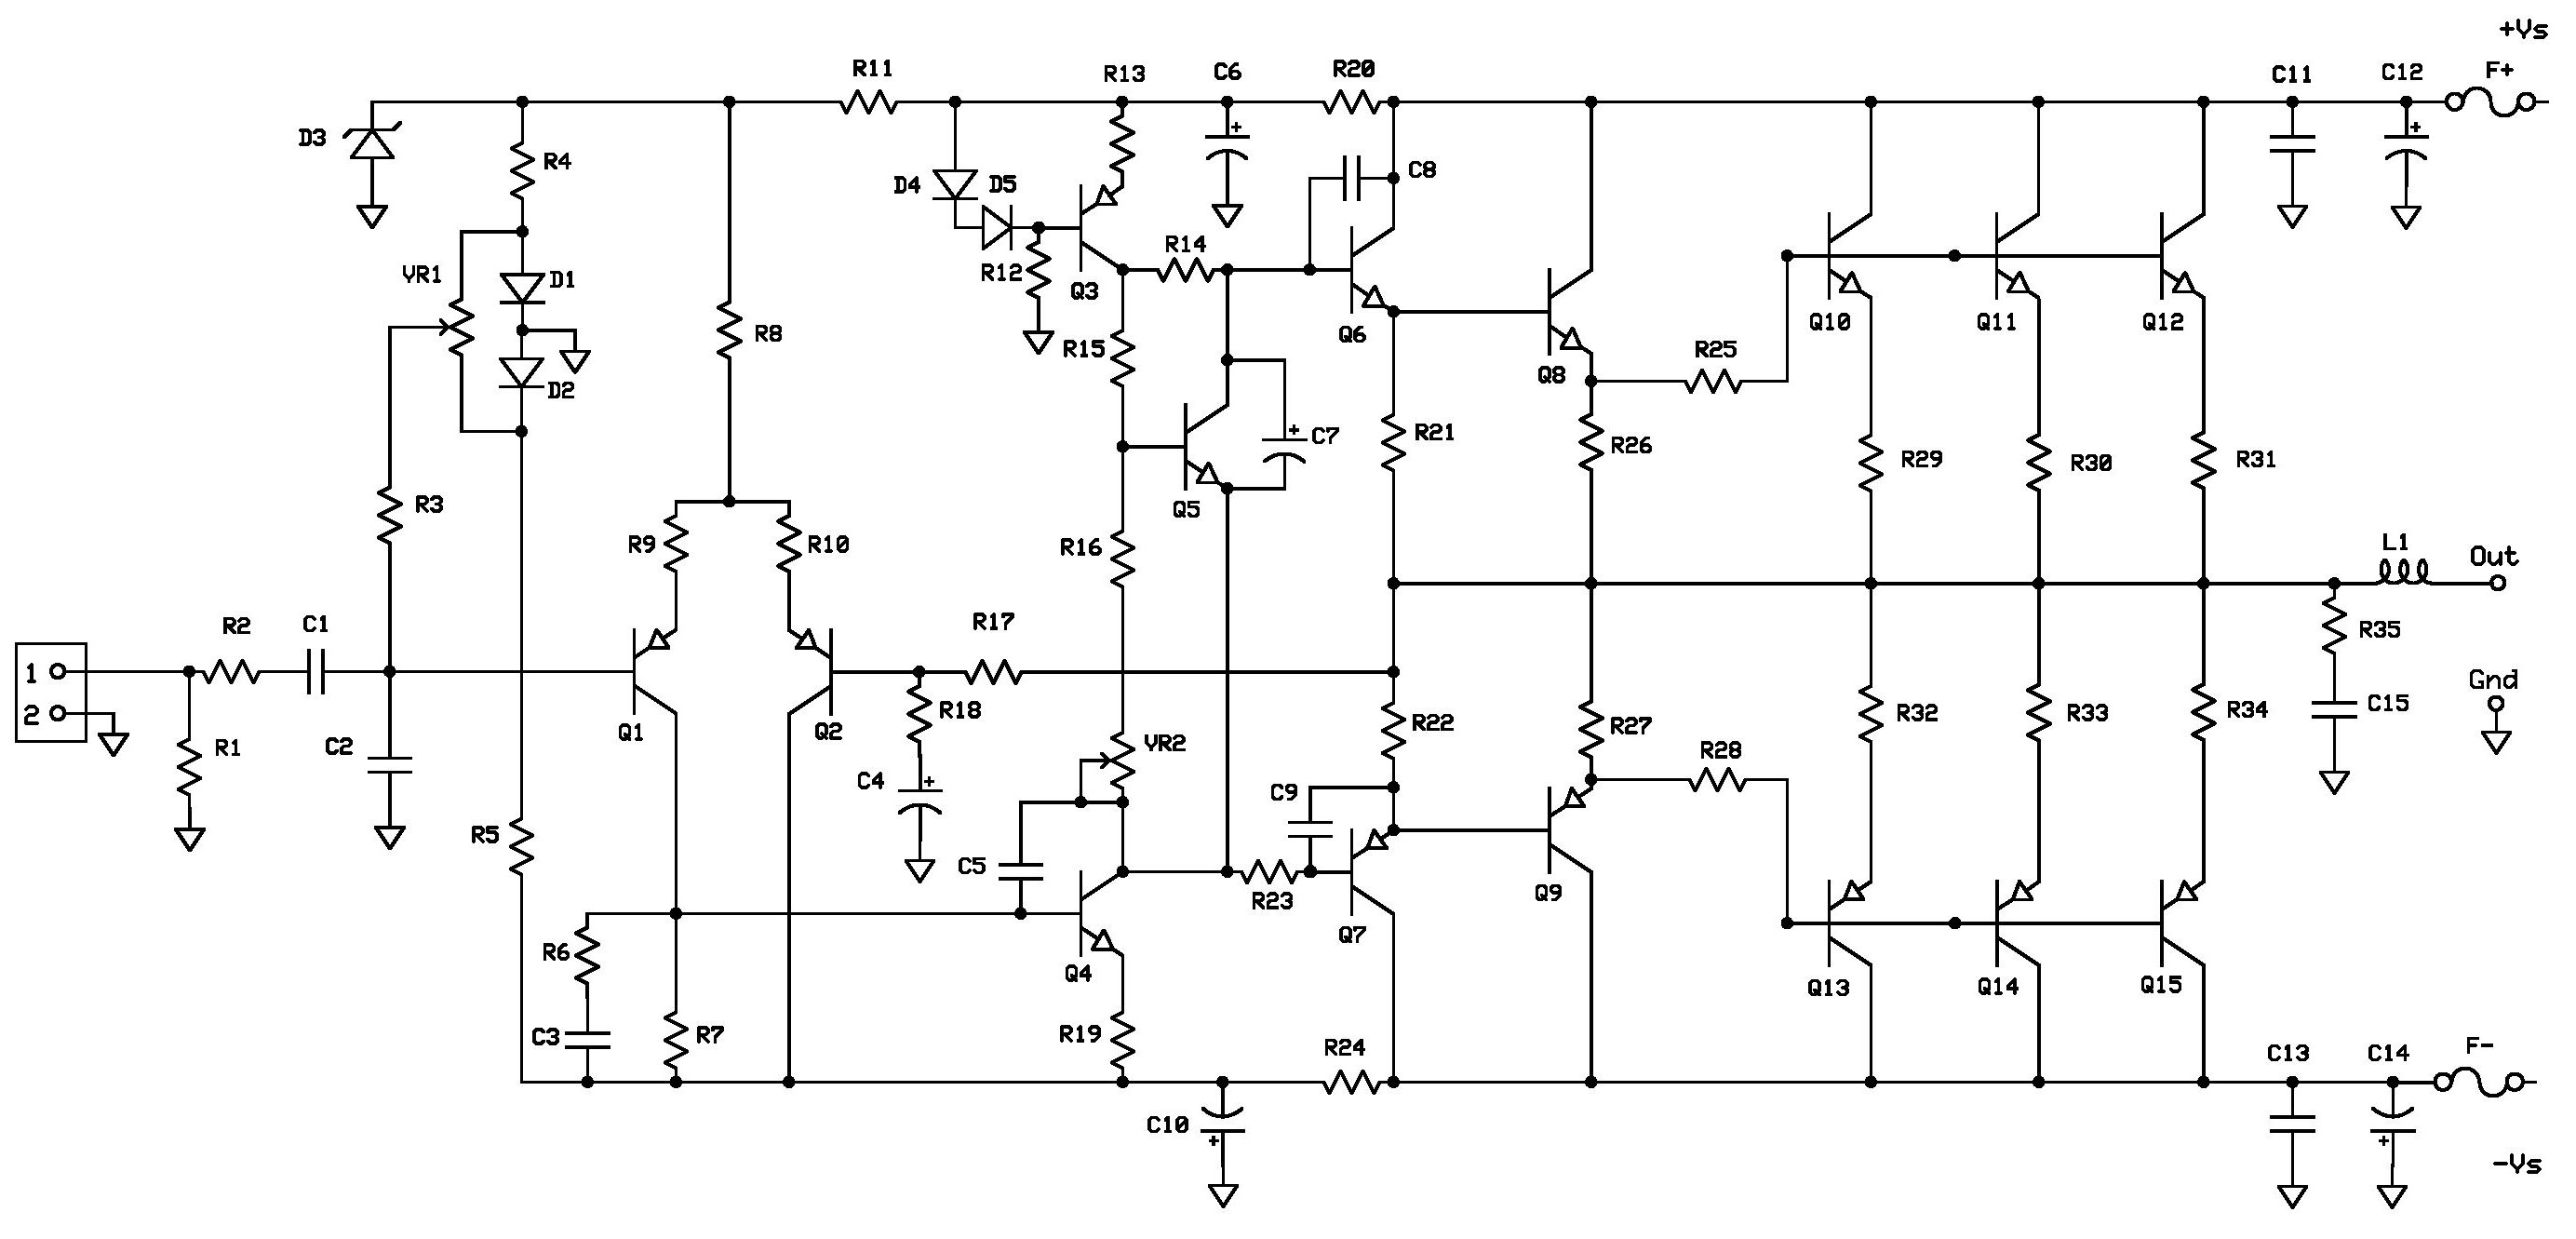 Grozzart 2sc5200 2sa1943 Amplifier Circuit 1channel Amp Wiring Diagram 2sa19 43 Project2 Schematic Page 001